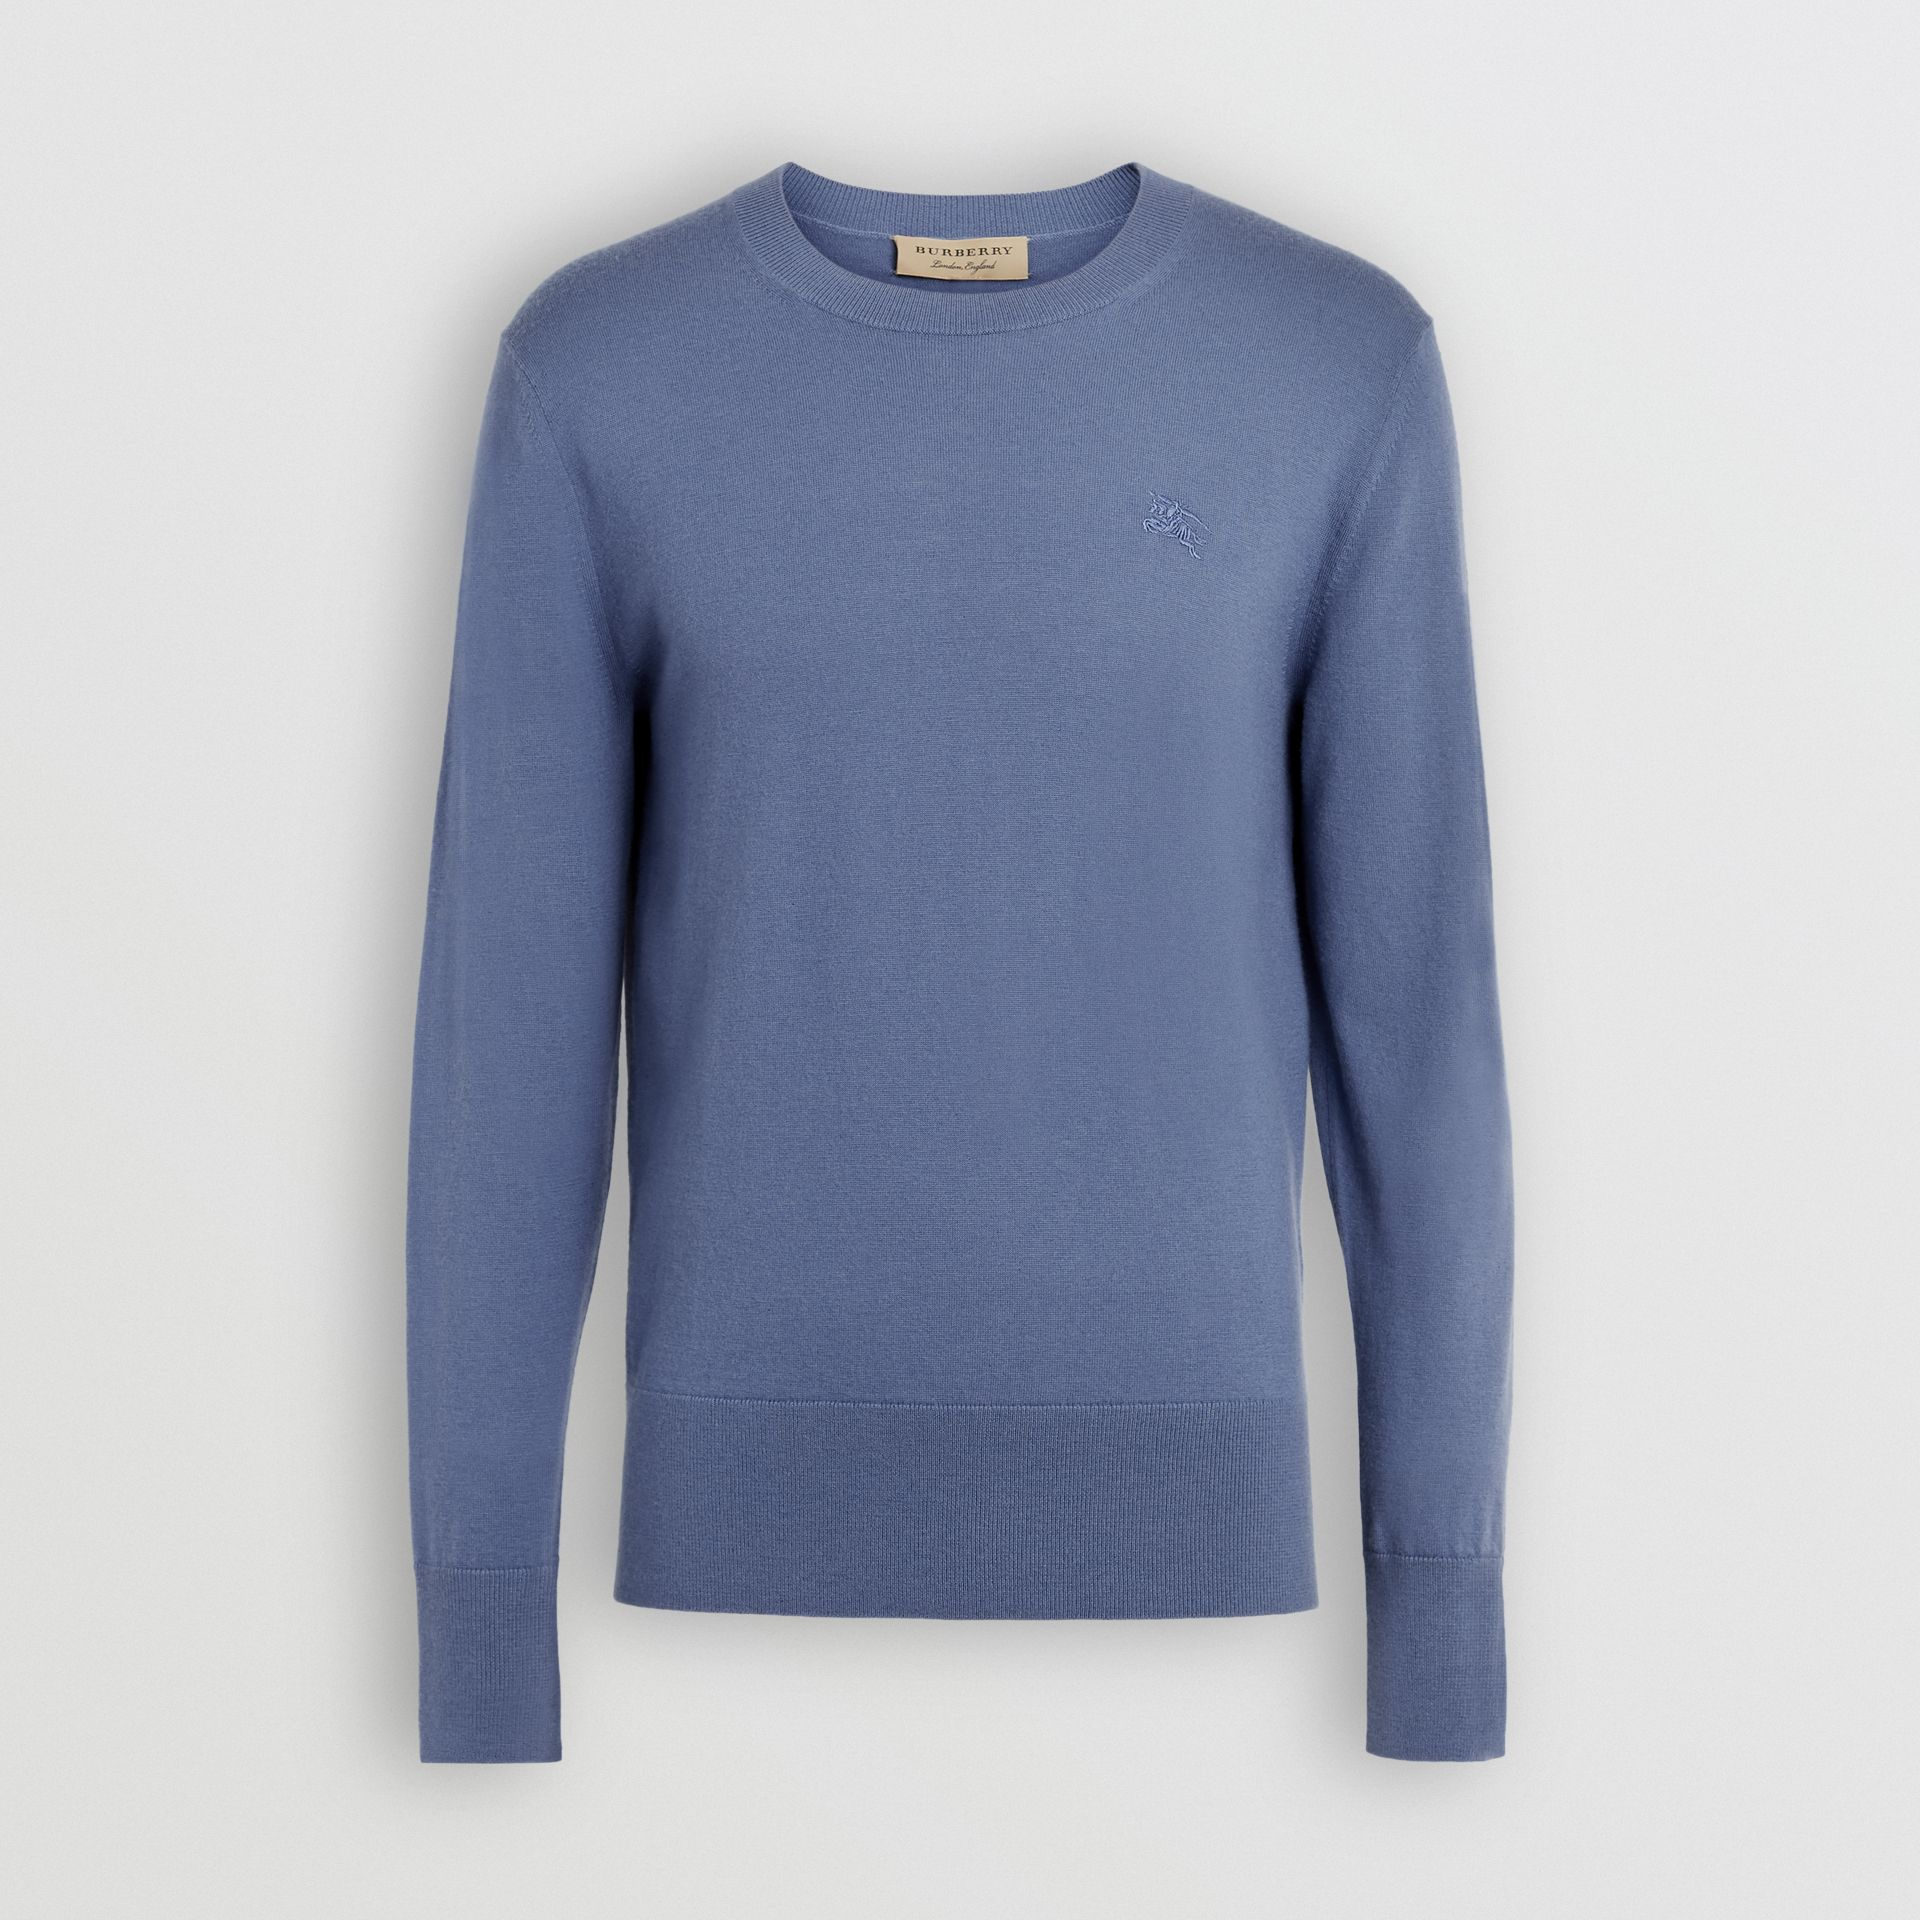 Crew Neck Cashmere Sweater in Airforce Blue - Men | Burberry - gallery image 3